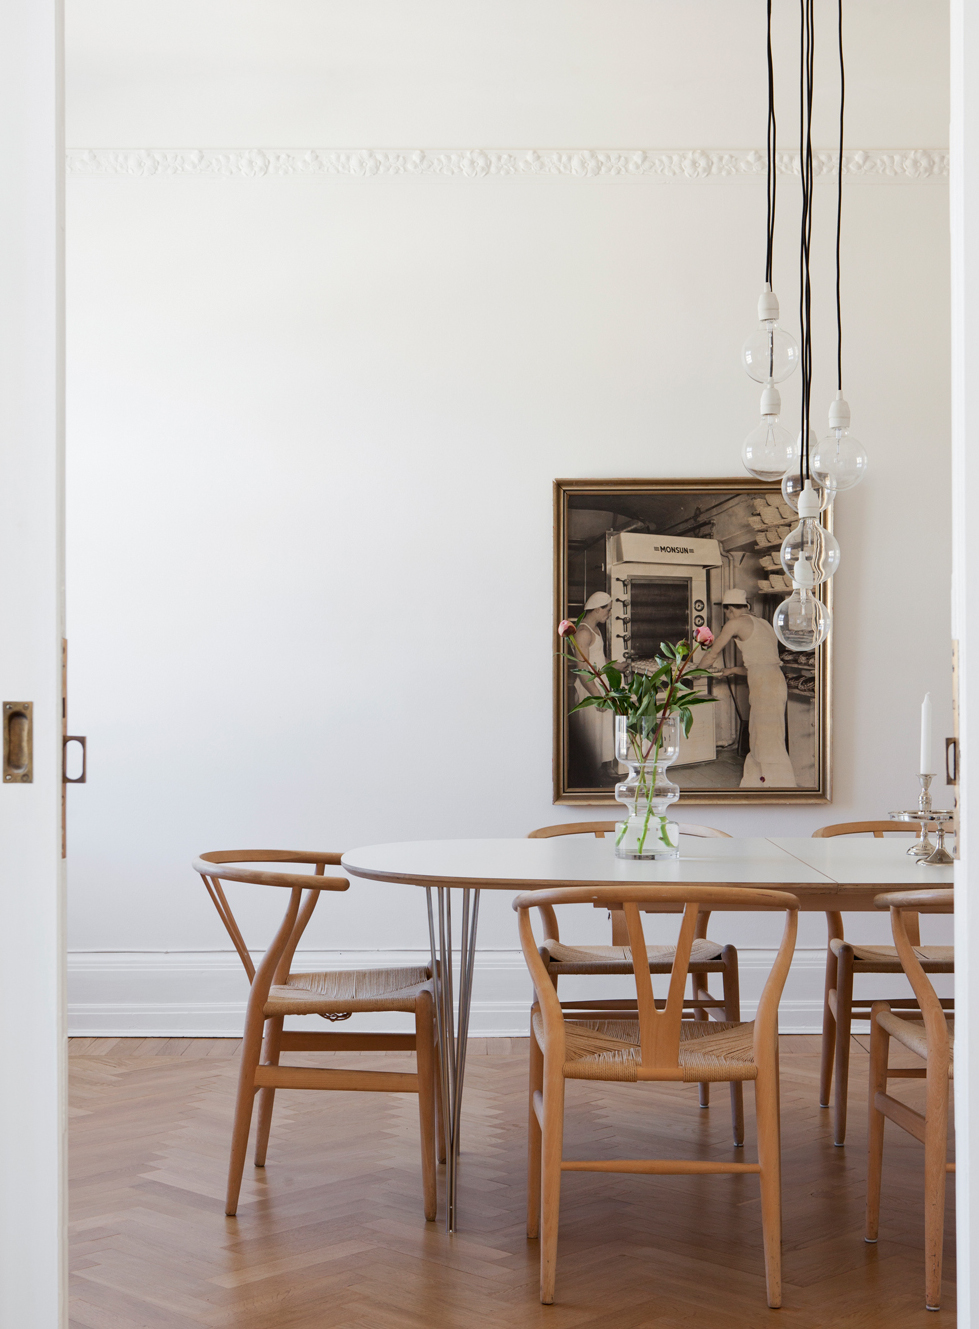 Marias Esszimmer Old Home With Integrated Closets Coco Lapine Designcoco Lapine